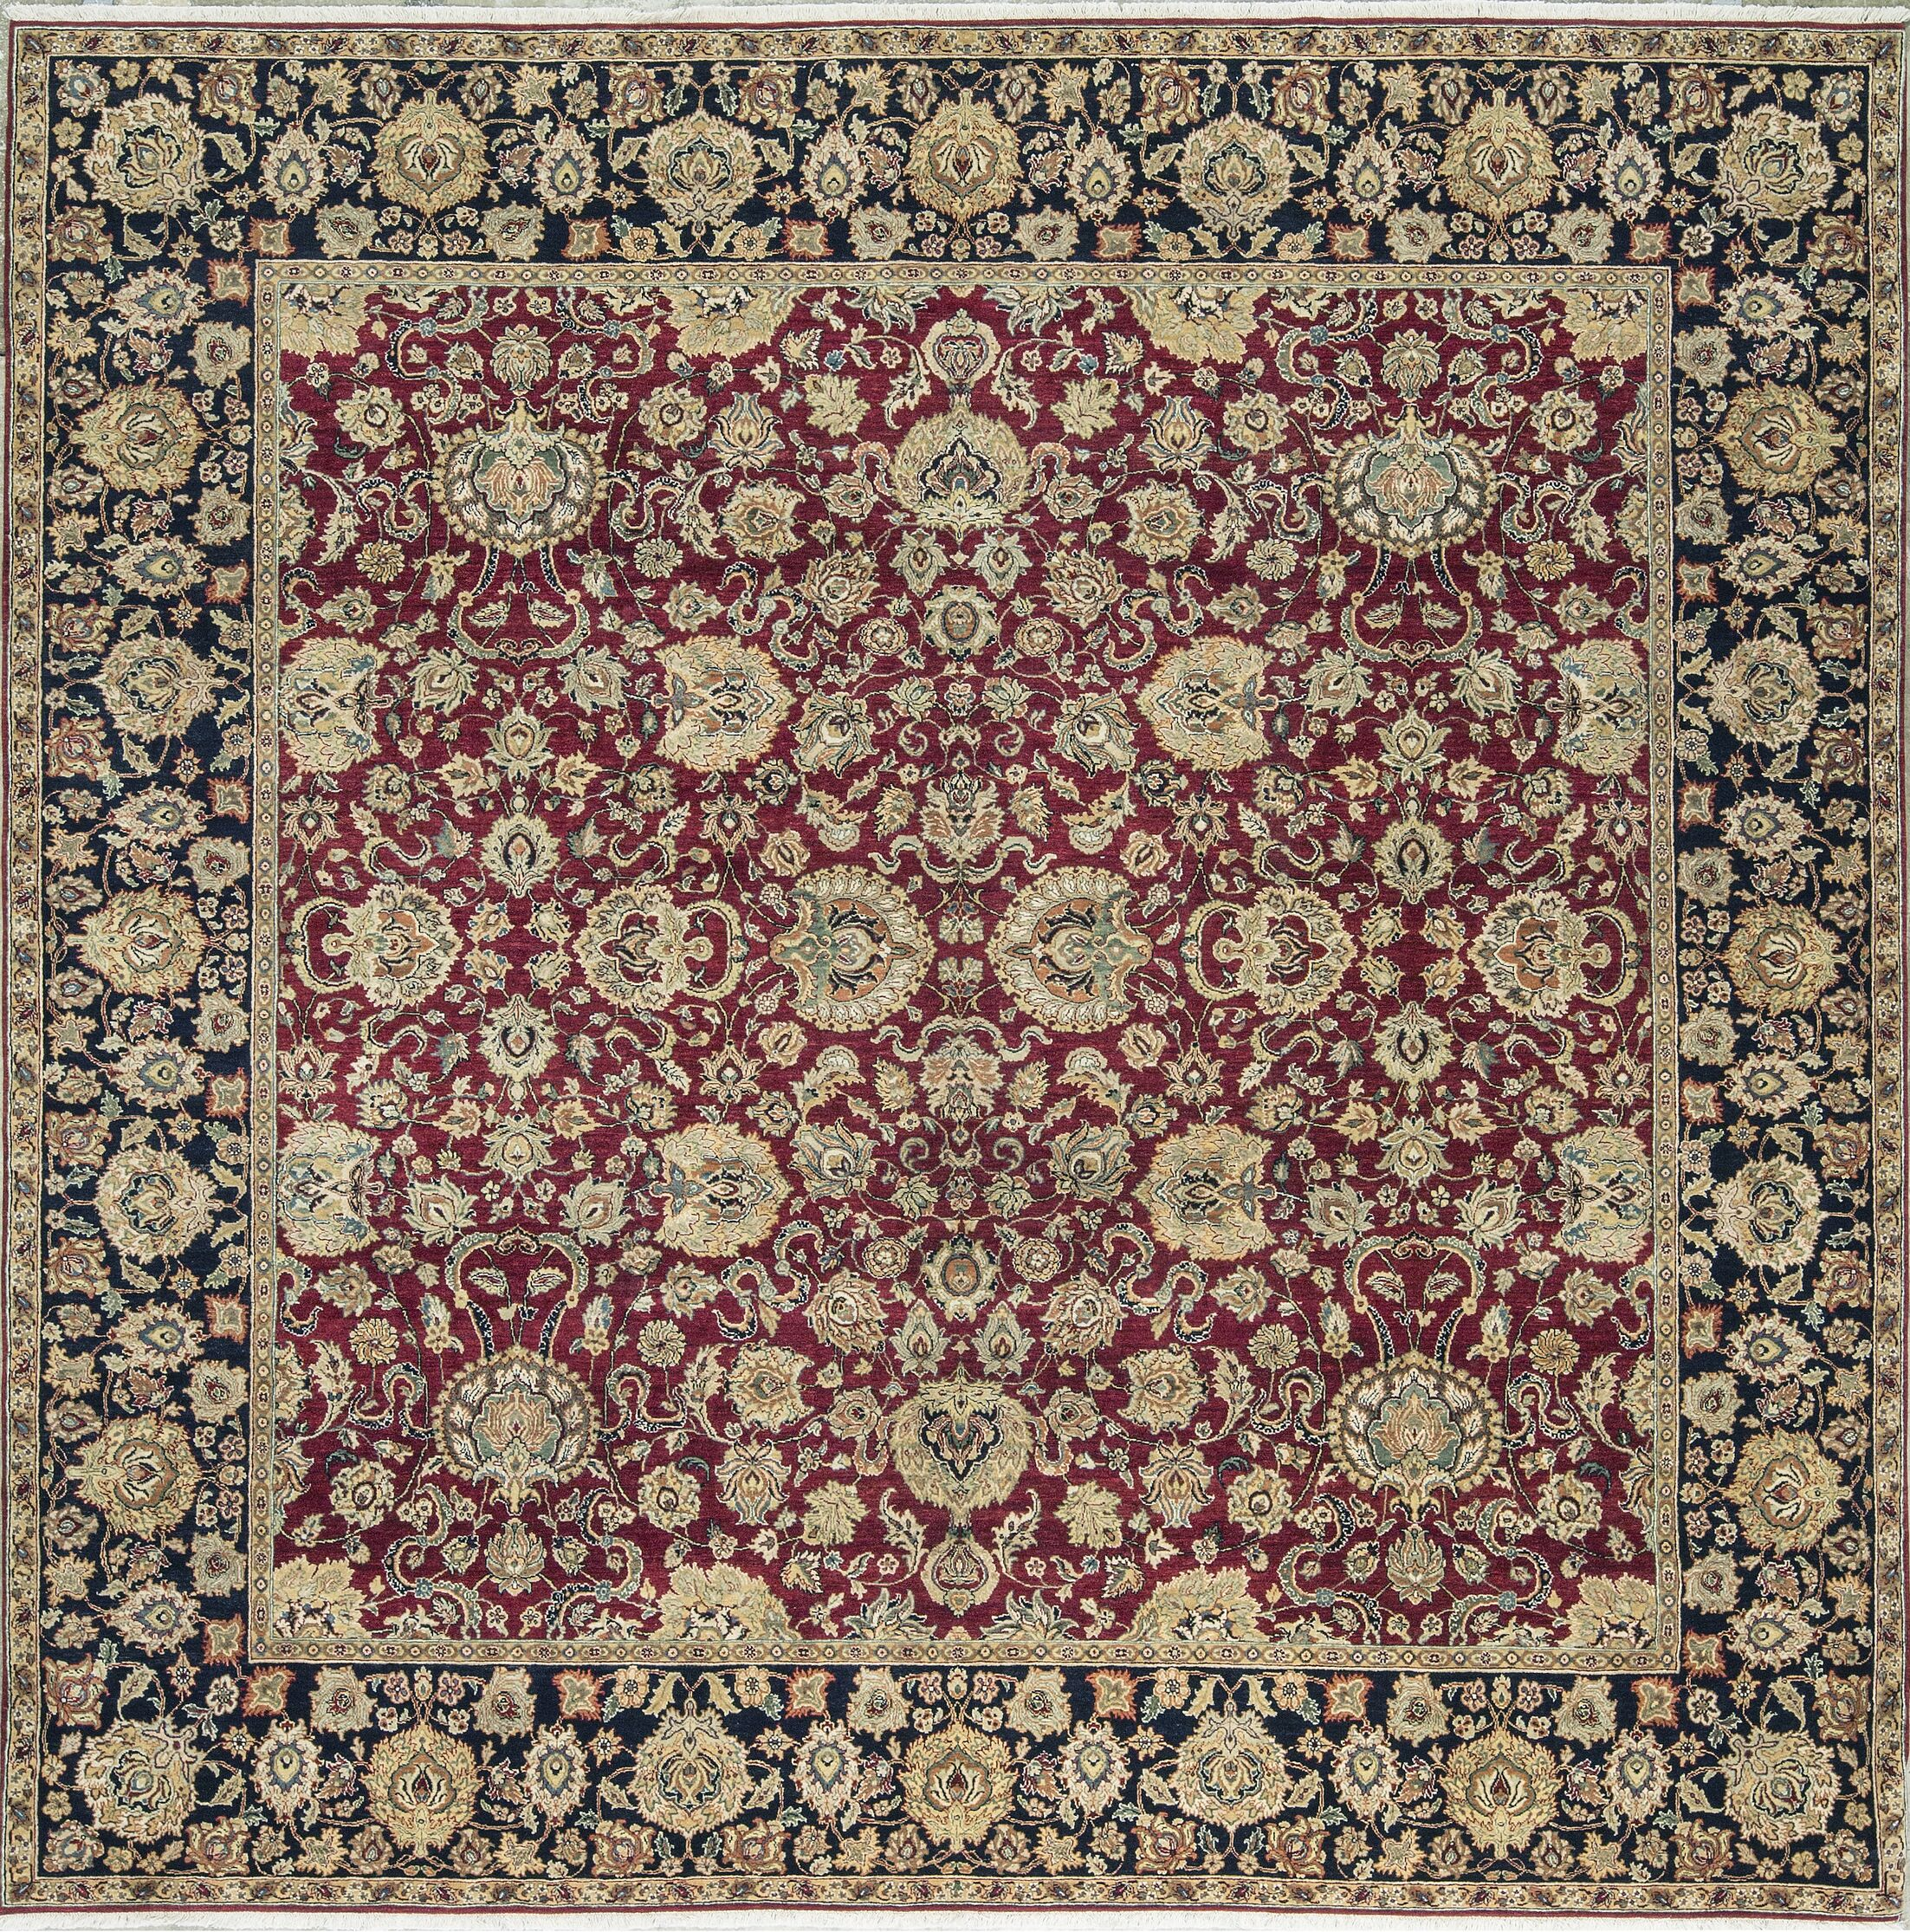 One-of-a-Kind Hand-Knotted Wool Red/Beige Indoor Area Rug